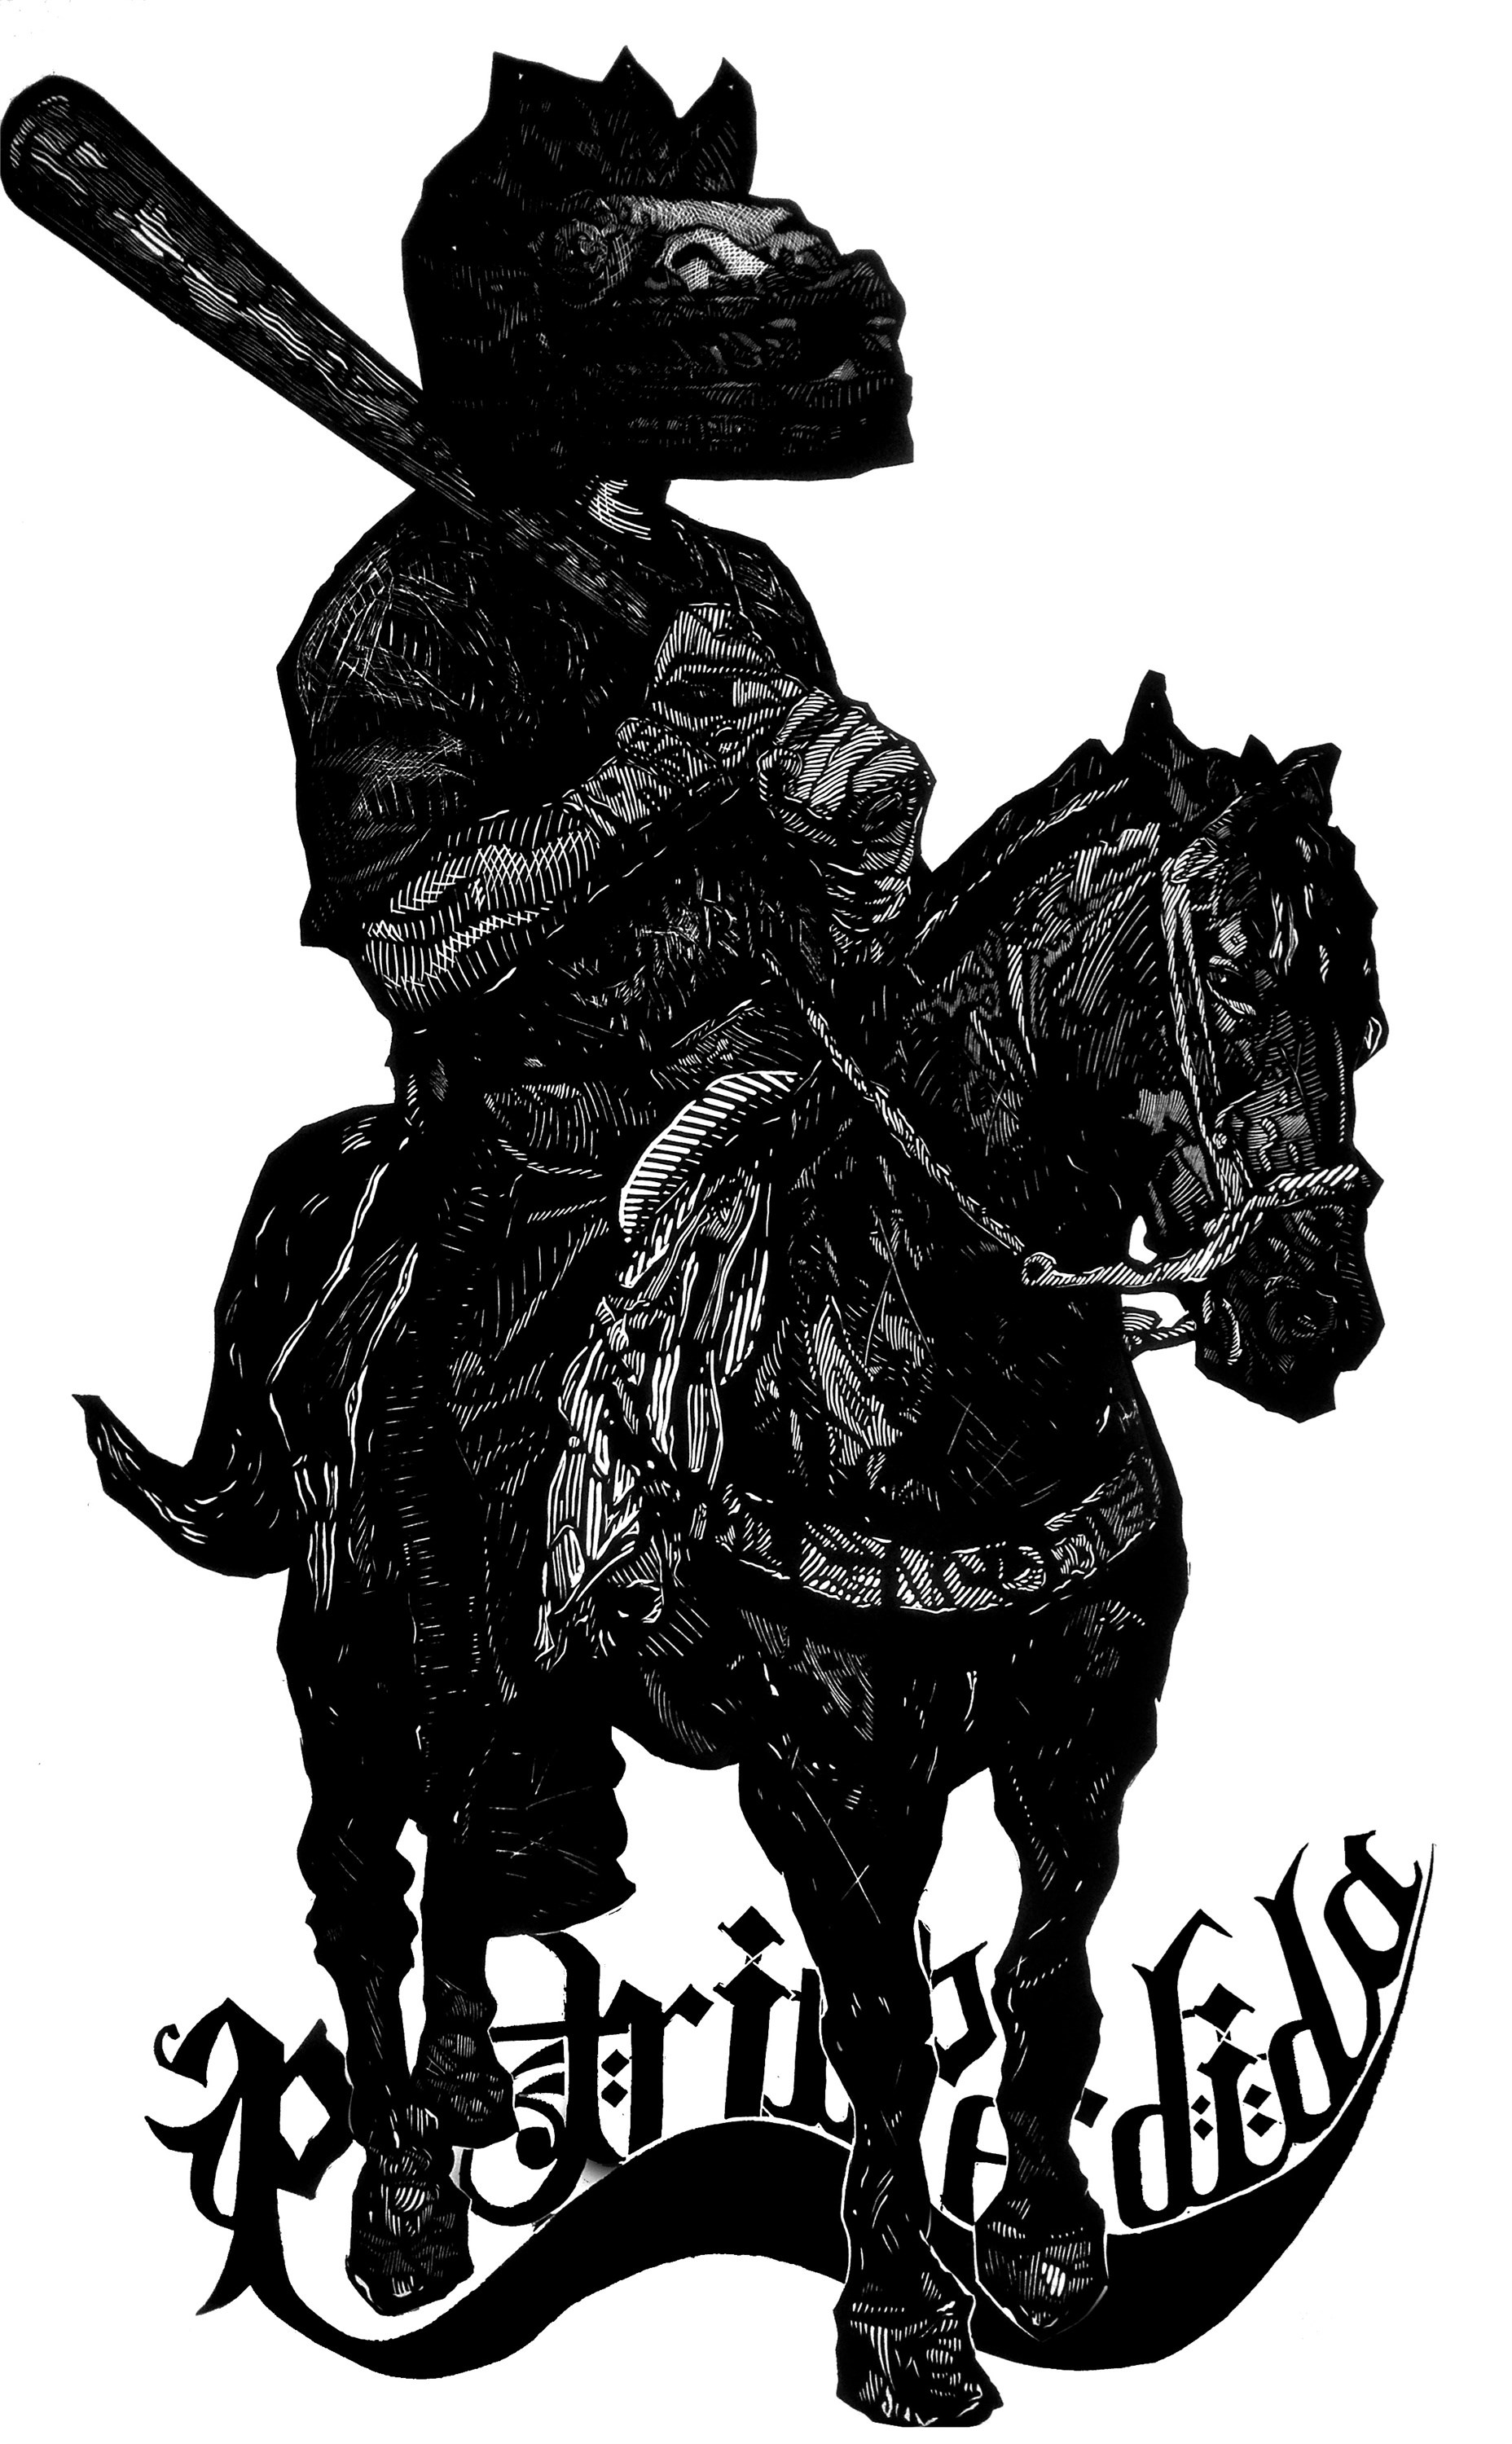 La Patria Perdida, original Human Figure Woodcut Drawing and Illustration by Humberto Valdez